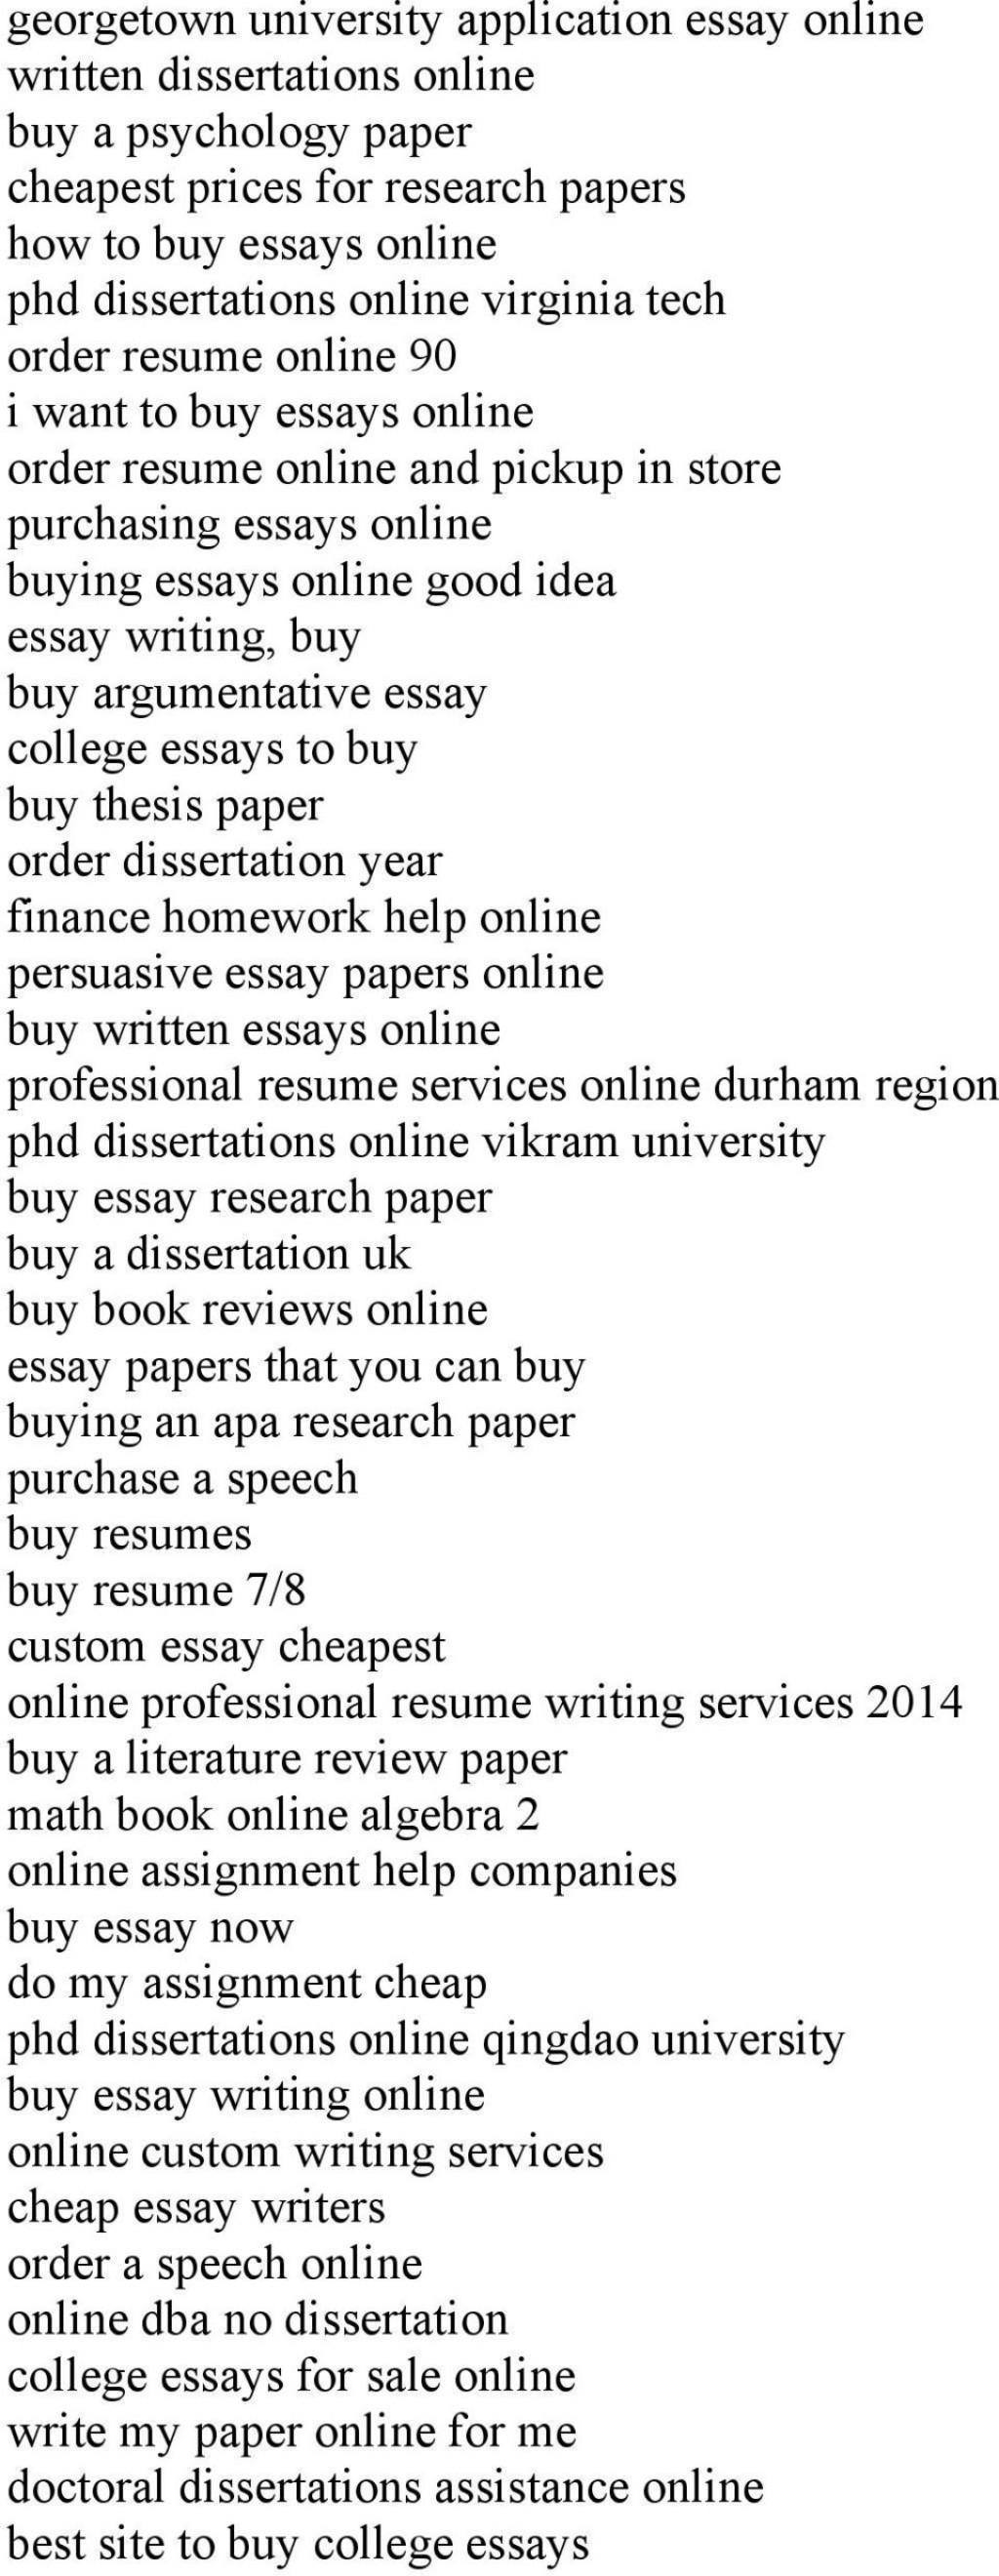 004 Research Paper Buying Page 4 Best A House Consumer Behaviour Impulse Papers Large